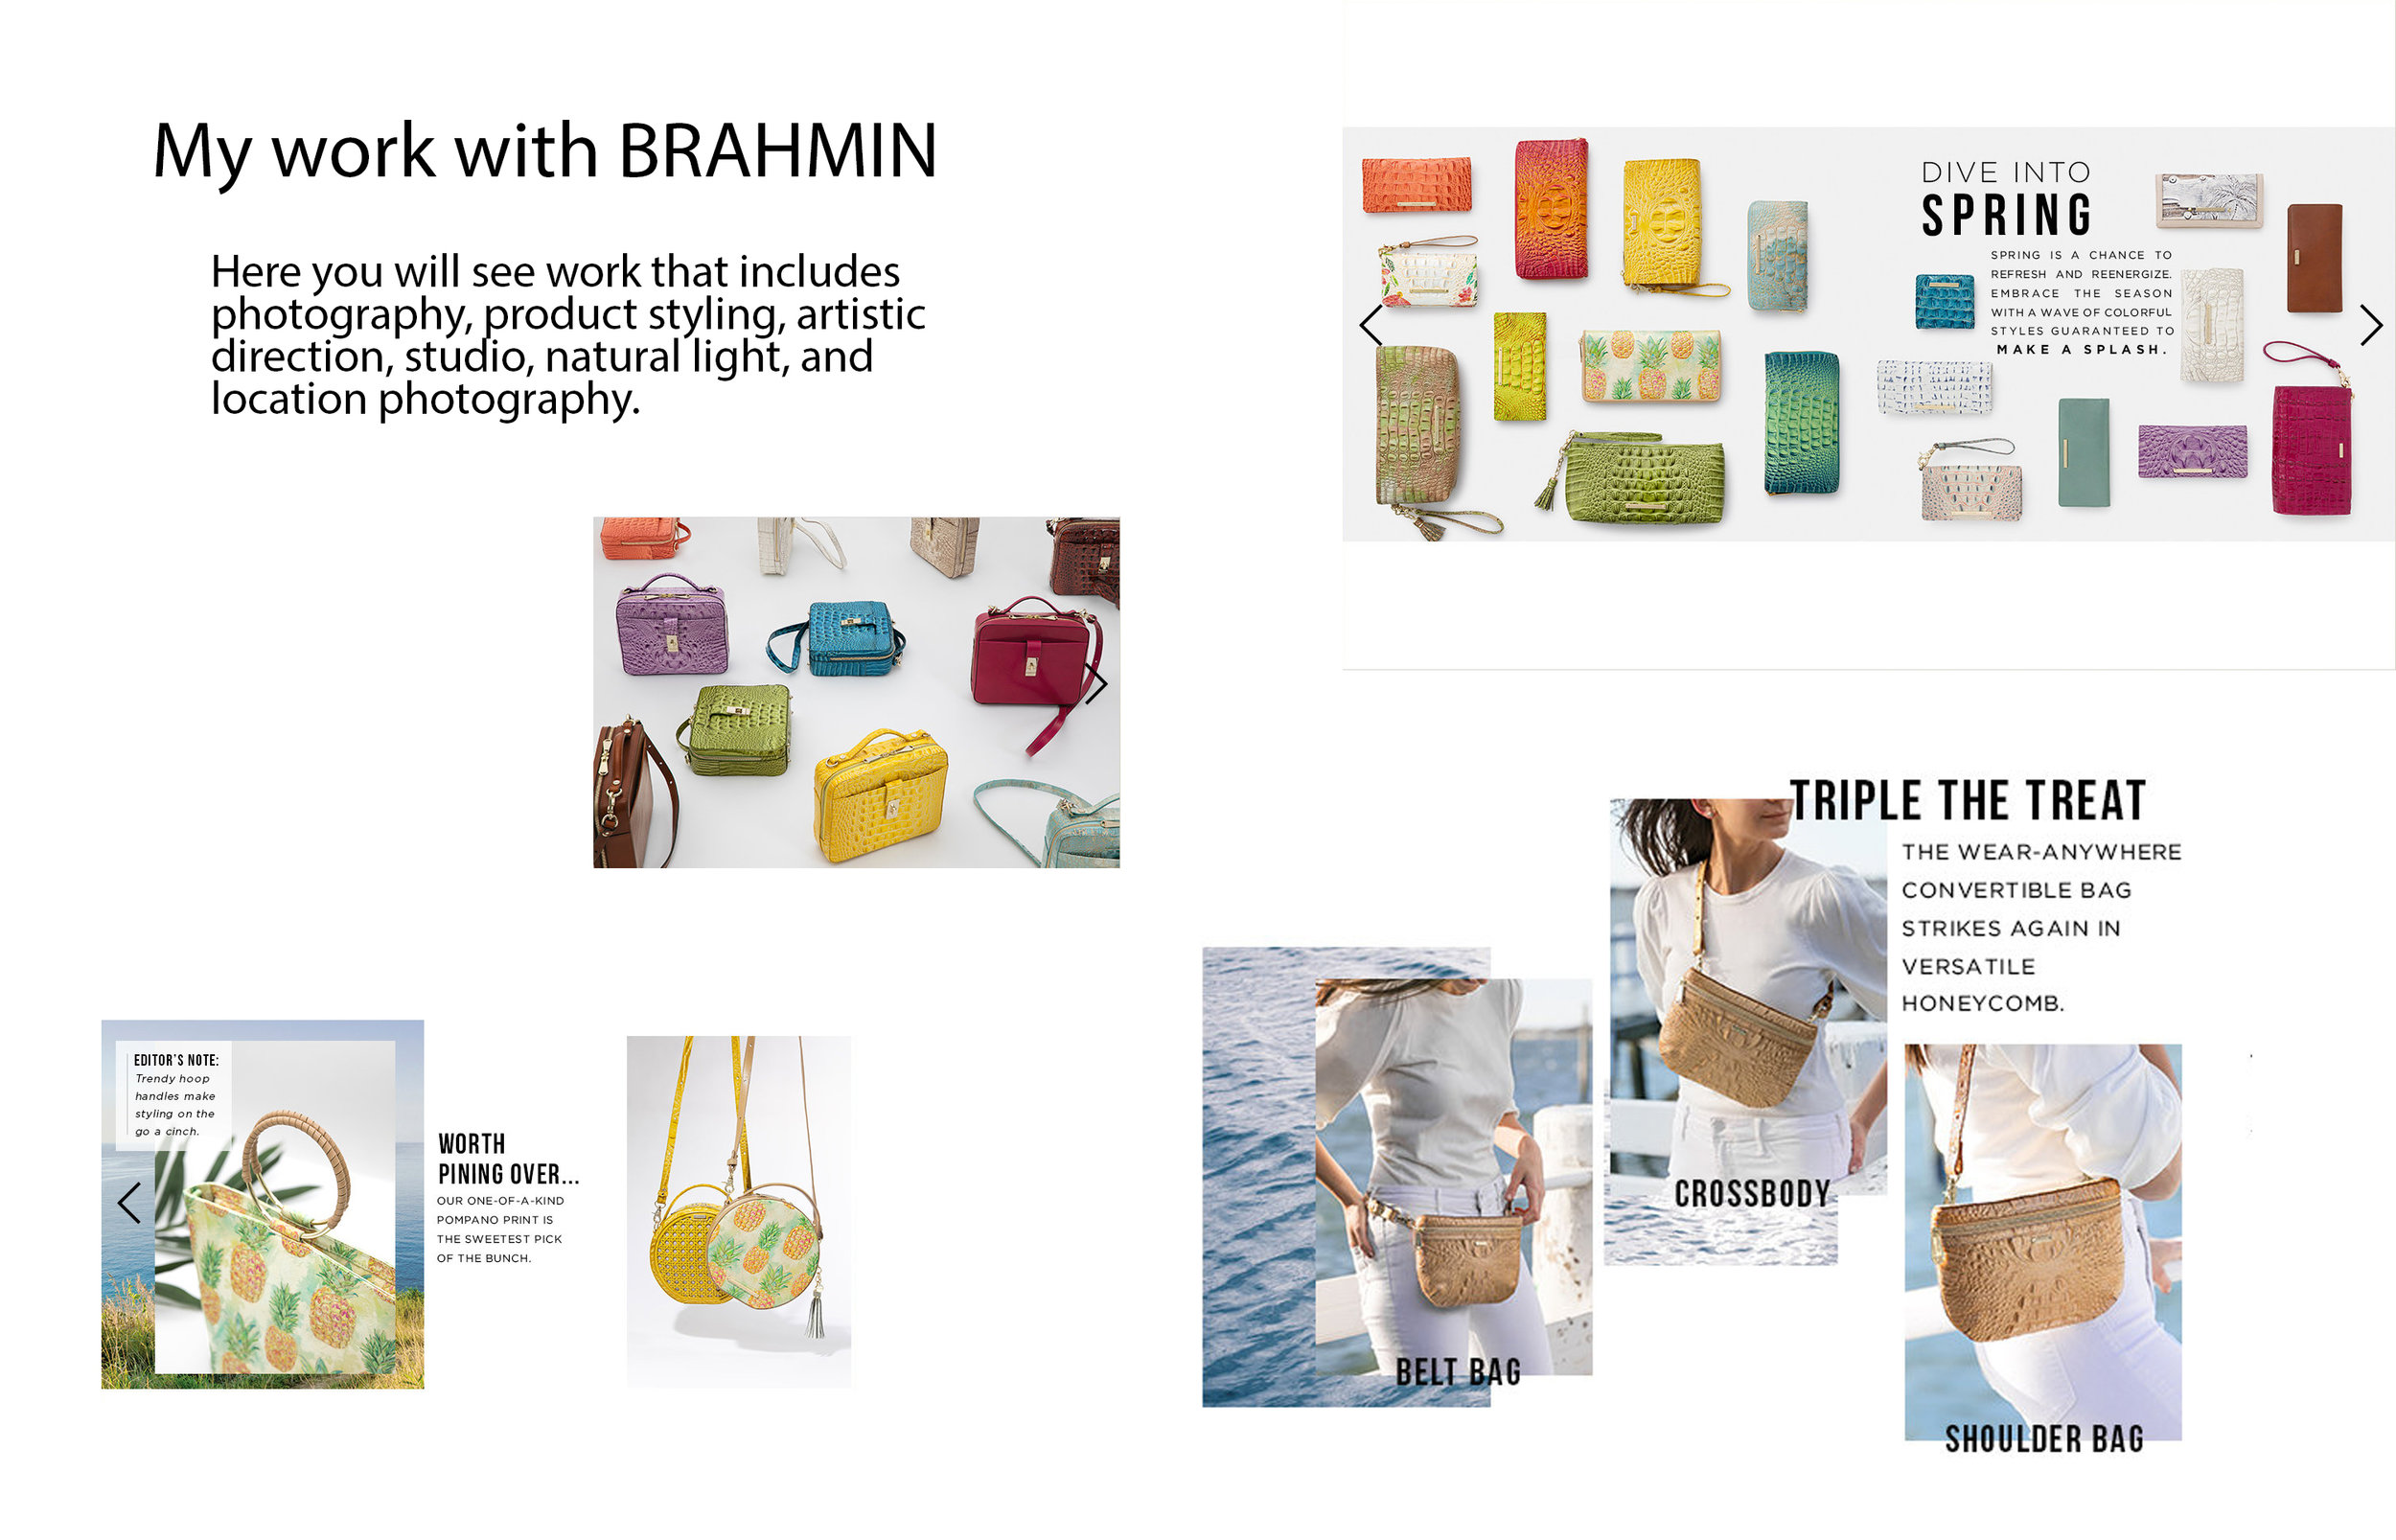 When Brahmin turned 35, they asked me to produce a visual story of the makings of a handbag and the workings behind the scenes.  It launched a 35th anniversary celebration that was featured in their catalog, on their website, and in their stores with large prints on display.